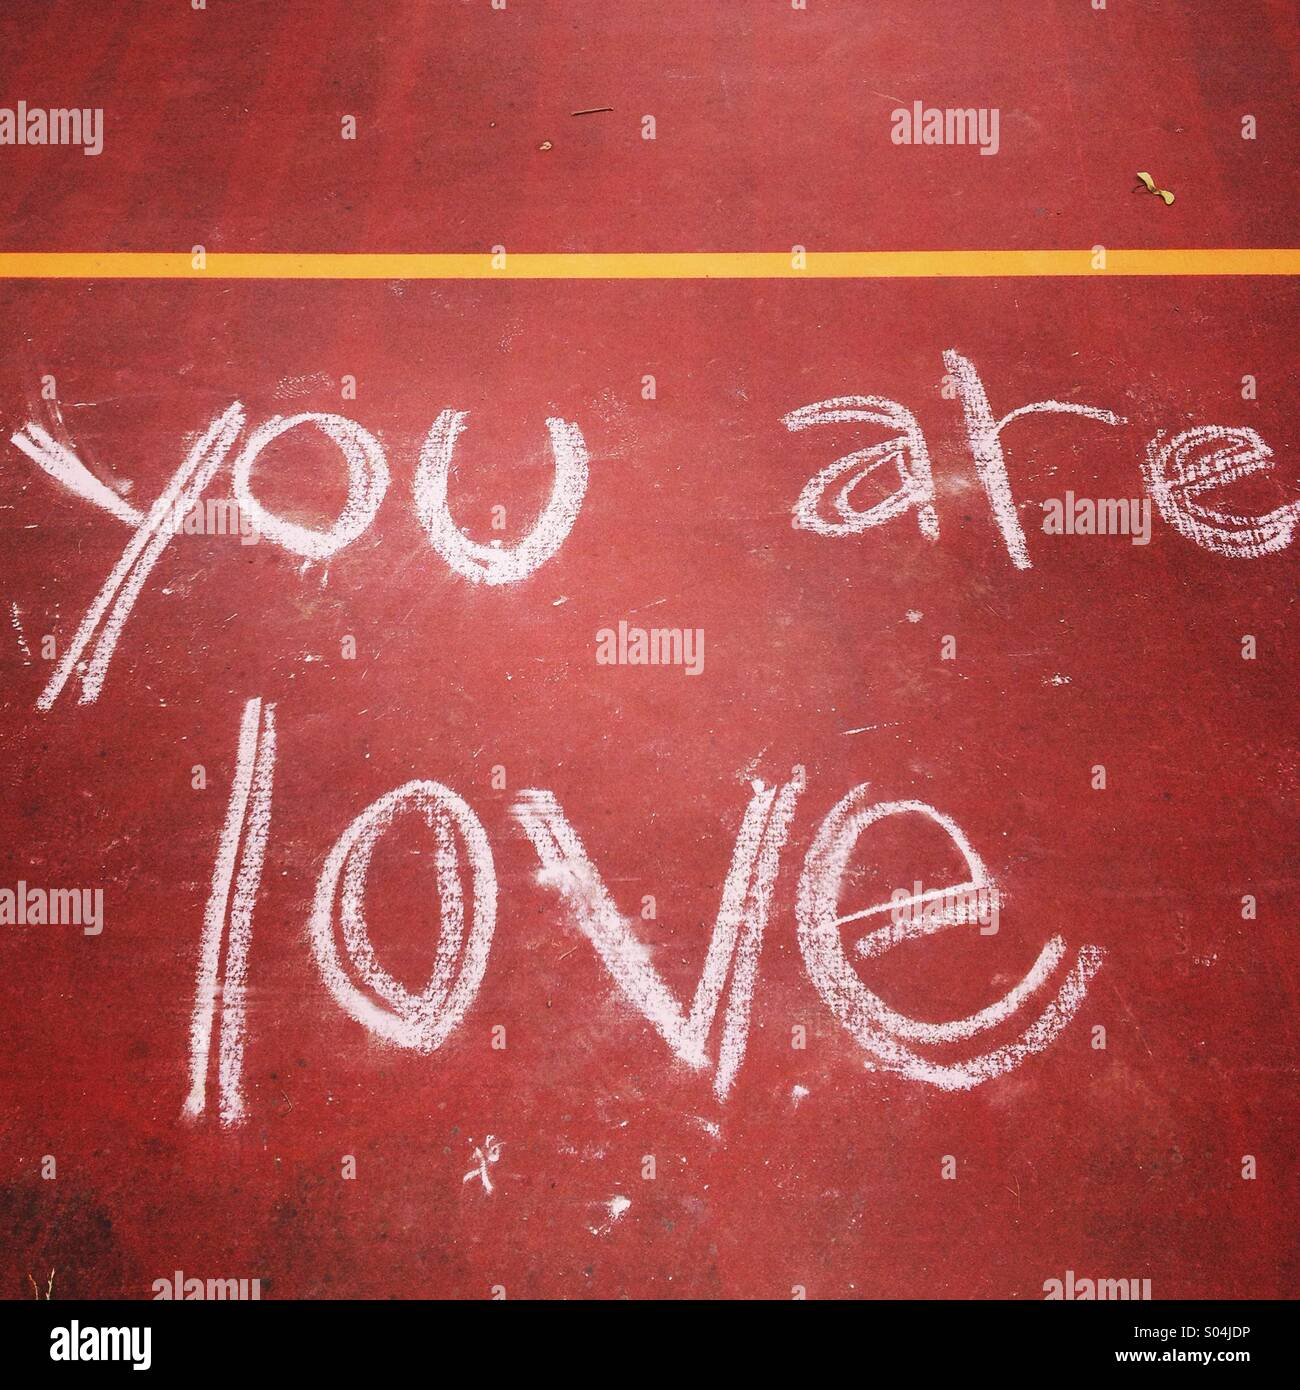 You are love - Stock Image